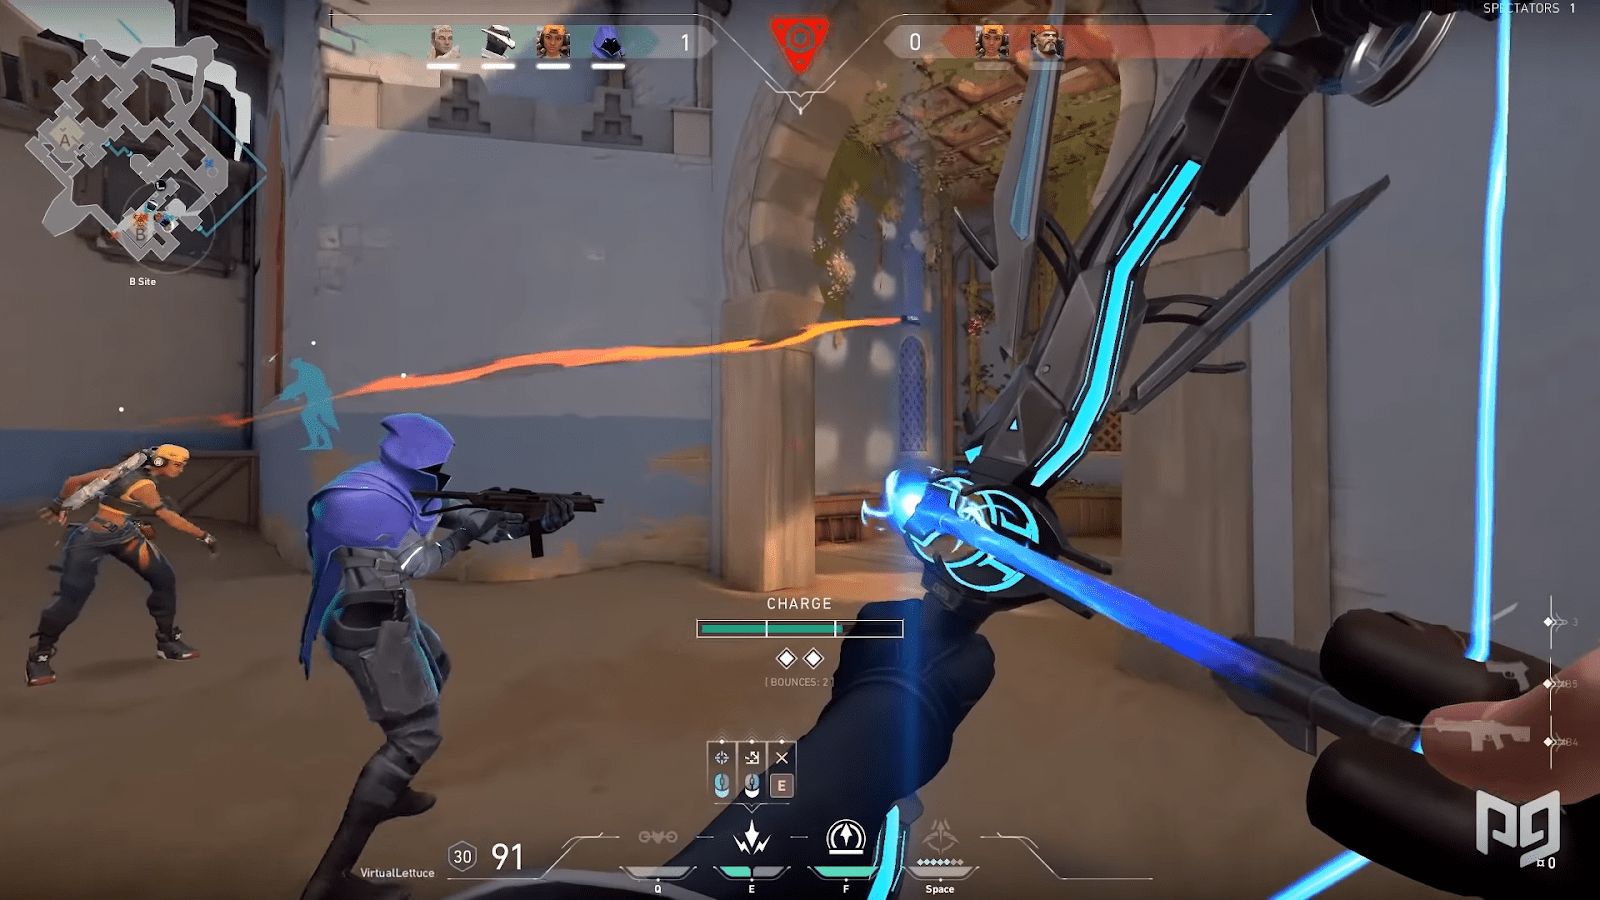 Sova firing his Shock Dart at enemies that are approaching from Long B on Bind